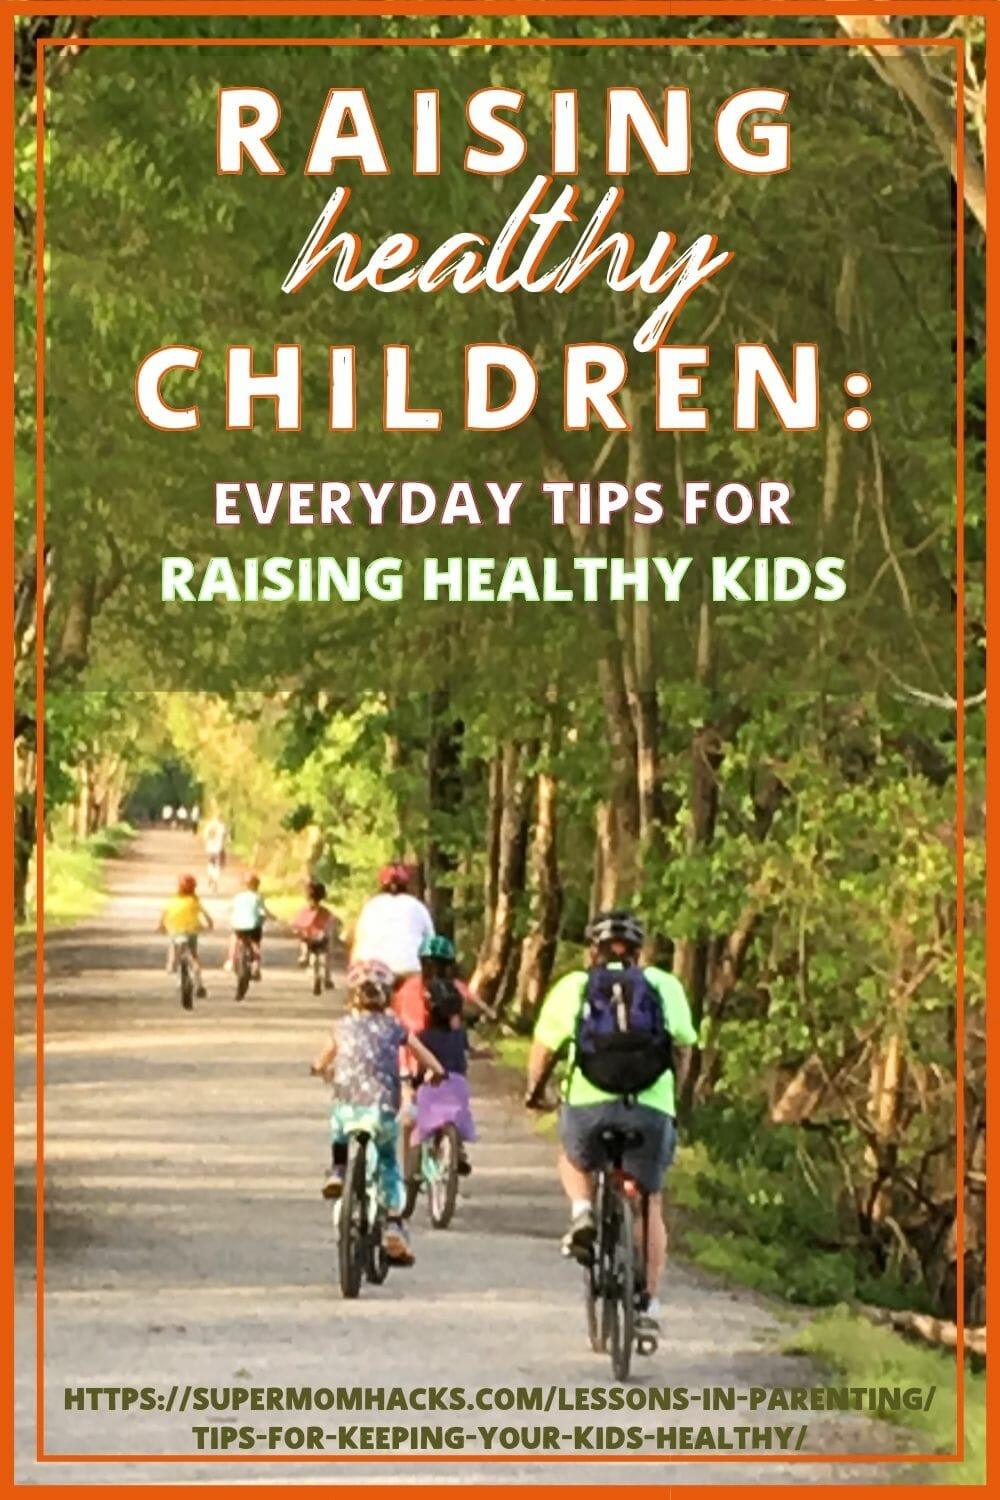 Every parent could use a few good tips for keeping your kids healthy. Experts agree with my own experiences as a mama: these tips for raising healthy children WORK!